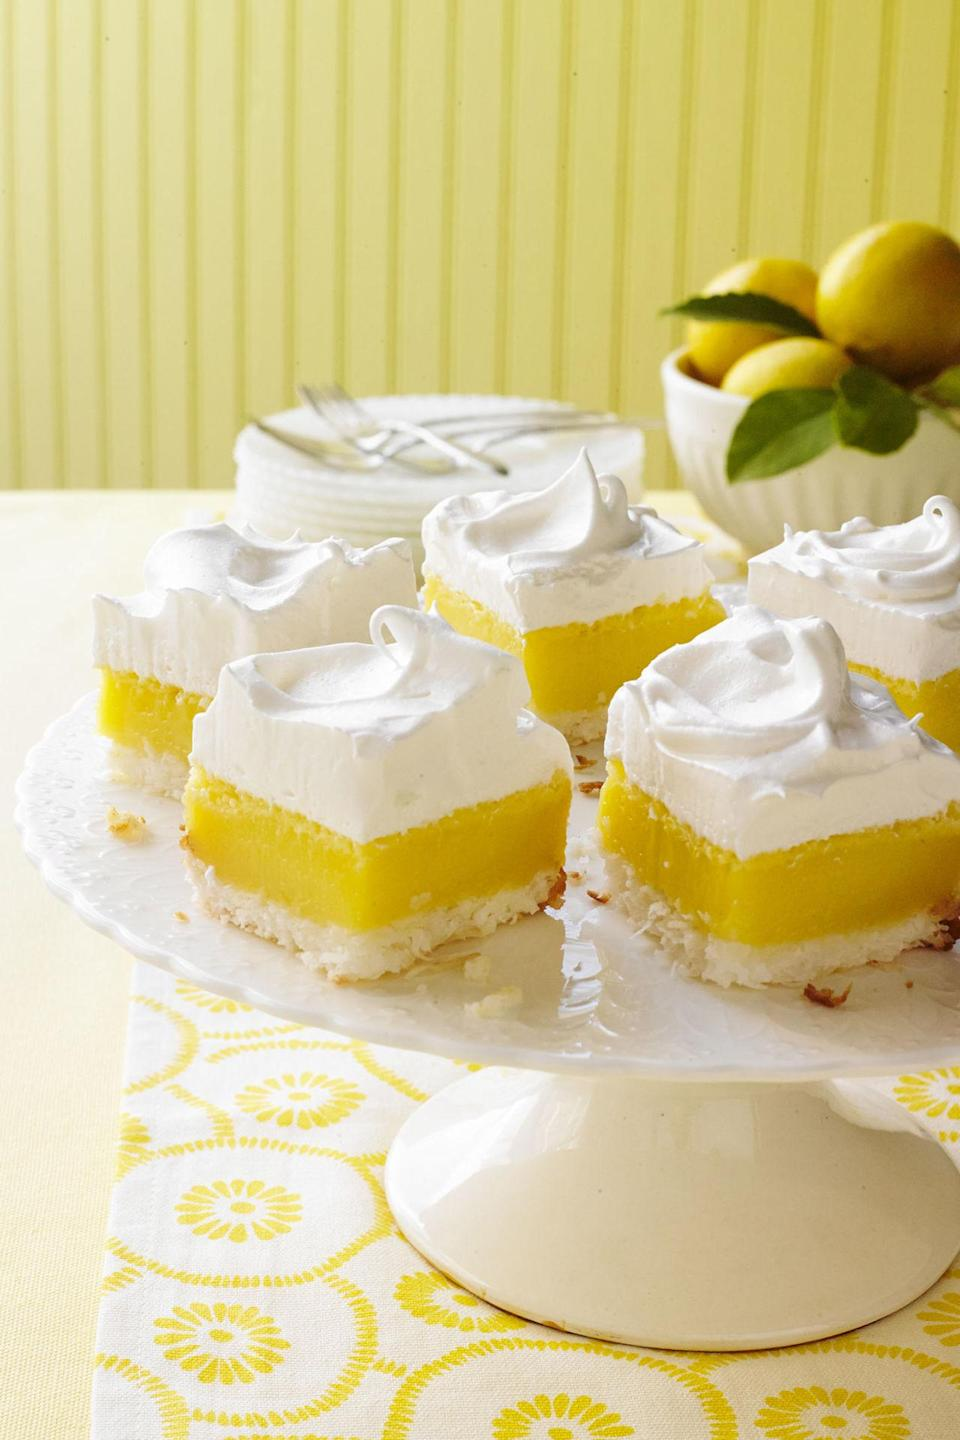 """<p><span>This decadent and creamy marshmallow frosting is next-level delicious!</span><br></p><p><strong><a href=""""http://www.countryliving.com/food-drinks/recipes/a34391/coconut-lemon-bars-marshmallow-frosting-recipe-wdy0514/"""" rel=""""nofollow noopener"""" target=""""_blank"""" data-ylk=""""slk:Get the recipe."""" class=""""link rapid-noclick-resp"""">Get the recipe.</a></strong></p>"""